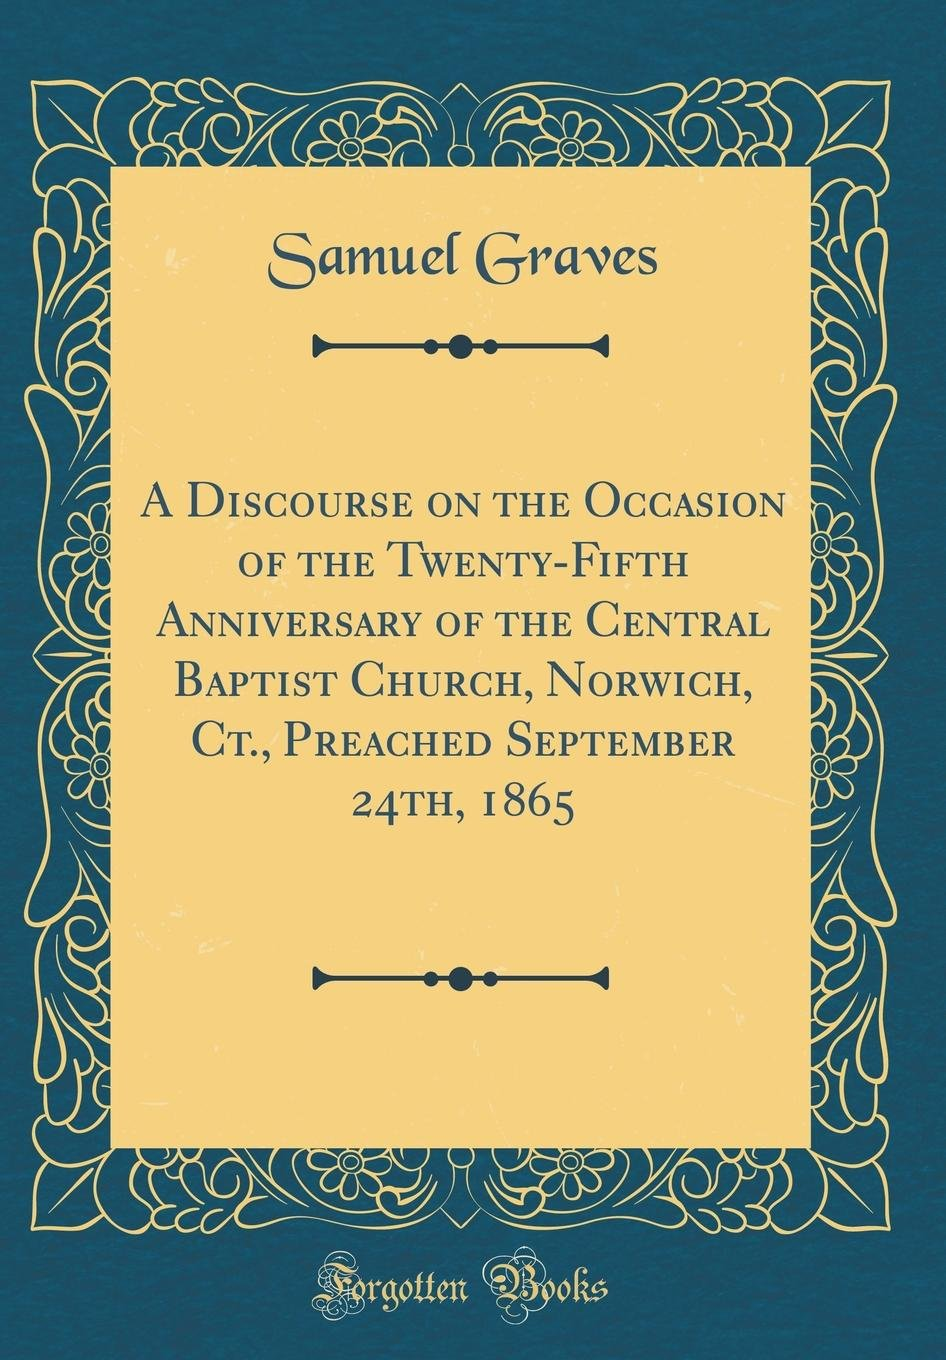 Read Online A Discourse on the Occasion of the Twenty-Fifth Anniversary of the Central Baptist Church, Norwich, Ct., Preached September 24th, 1865 (Classic Reprint) ebook